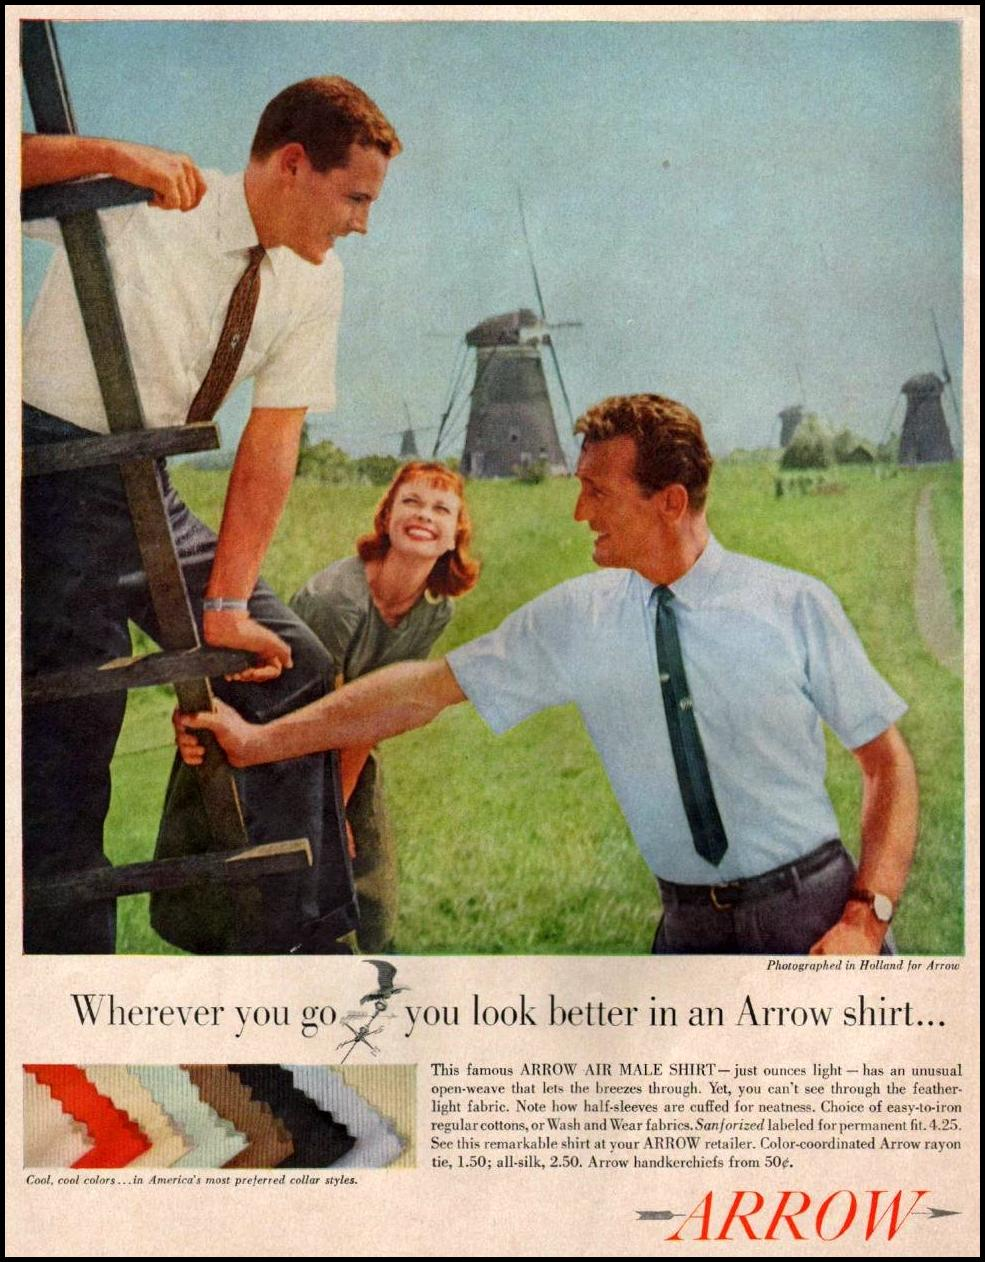 ARROW SHRITS SATURDAY EVENING POST 06/04/1960 p. 60